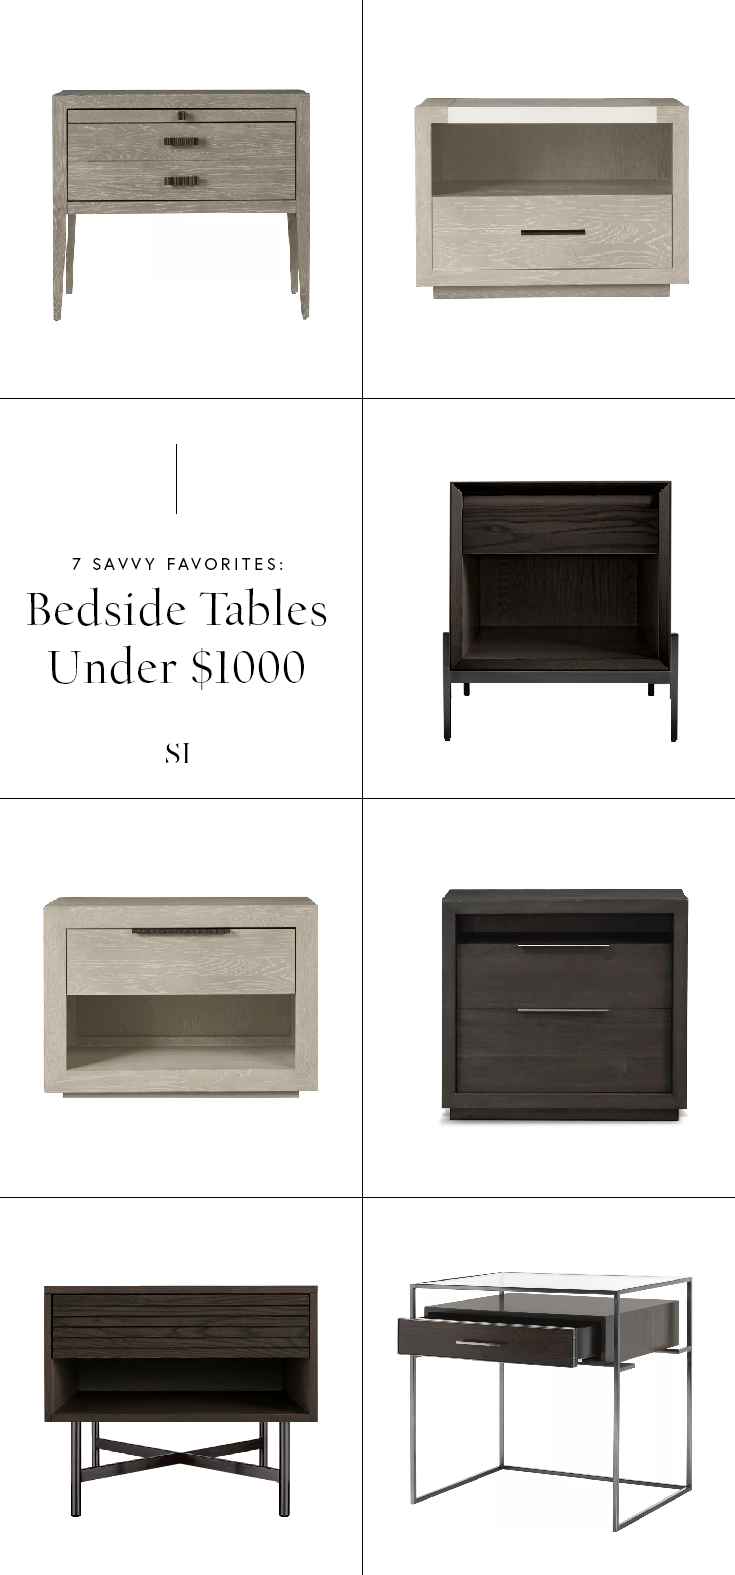 Modern and Minimal Bedside tables and nightstands under $1000 by the savvy heart.png